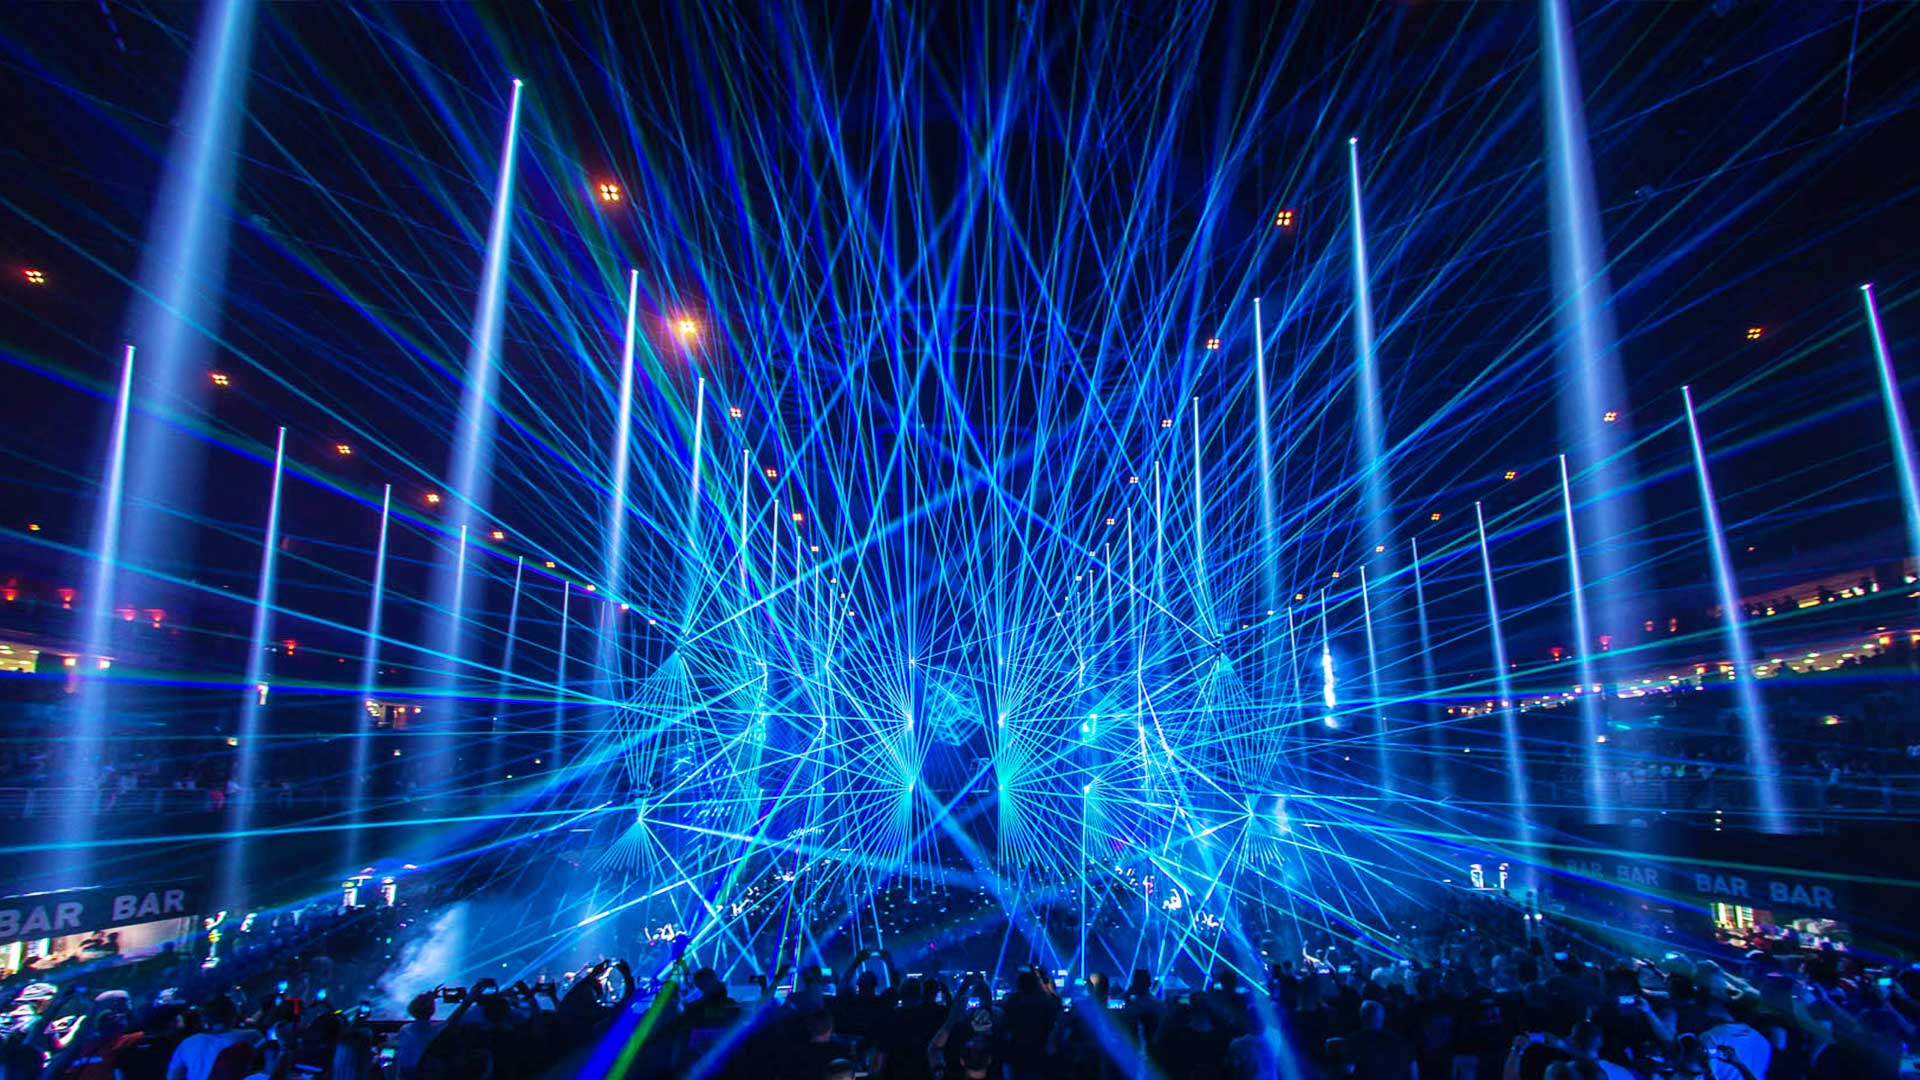 Transmission Festival On Twitter Transmission Festival Light Show Is Coming For You Get Your Tmaus20 Ticket Now Https T Co Pkihszoeph Transmission Australia Sydney Lightshow Lasershow Lasers Anotherdimension Spaceship